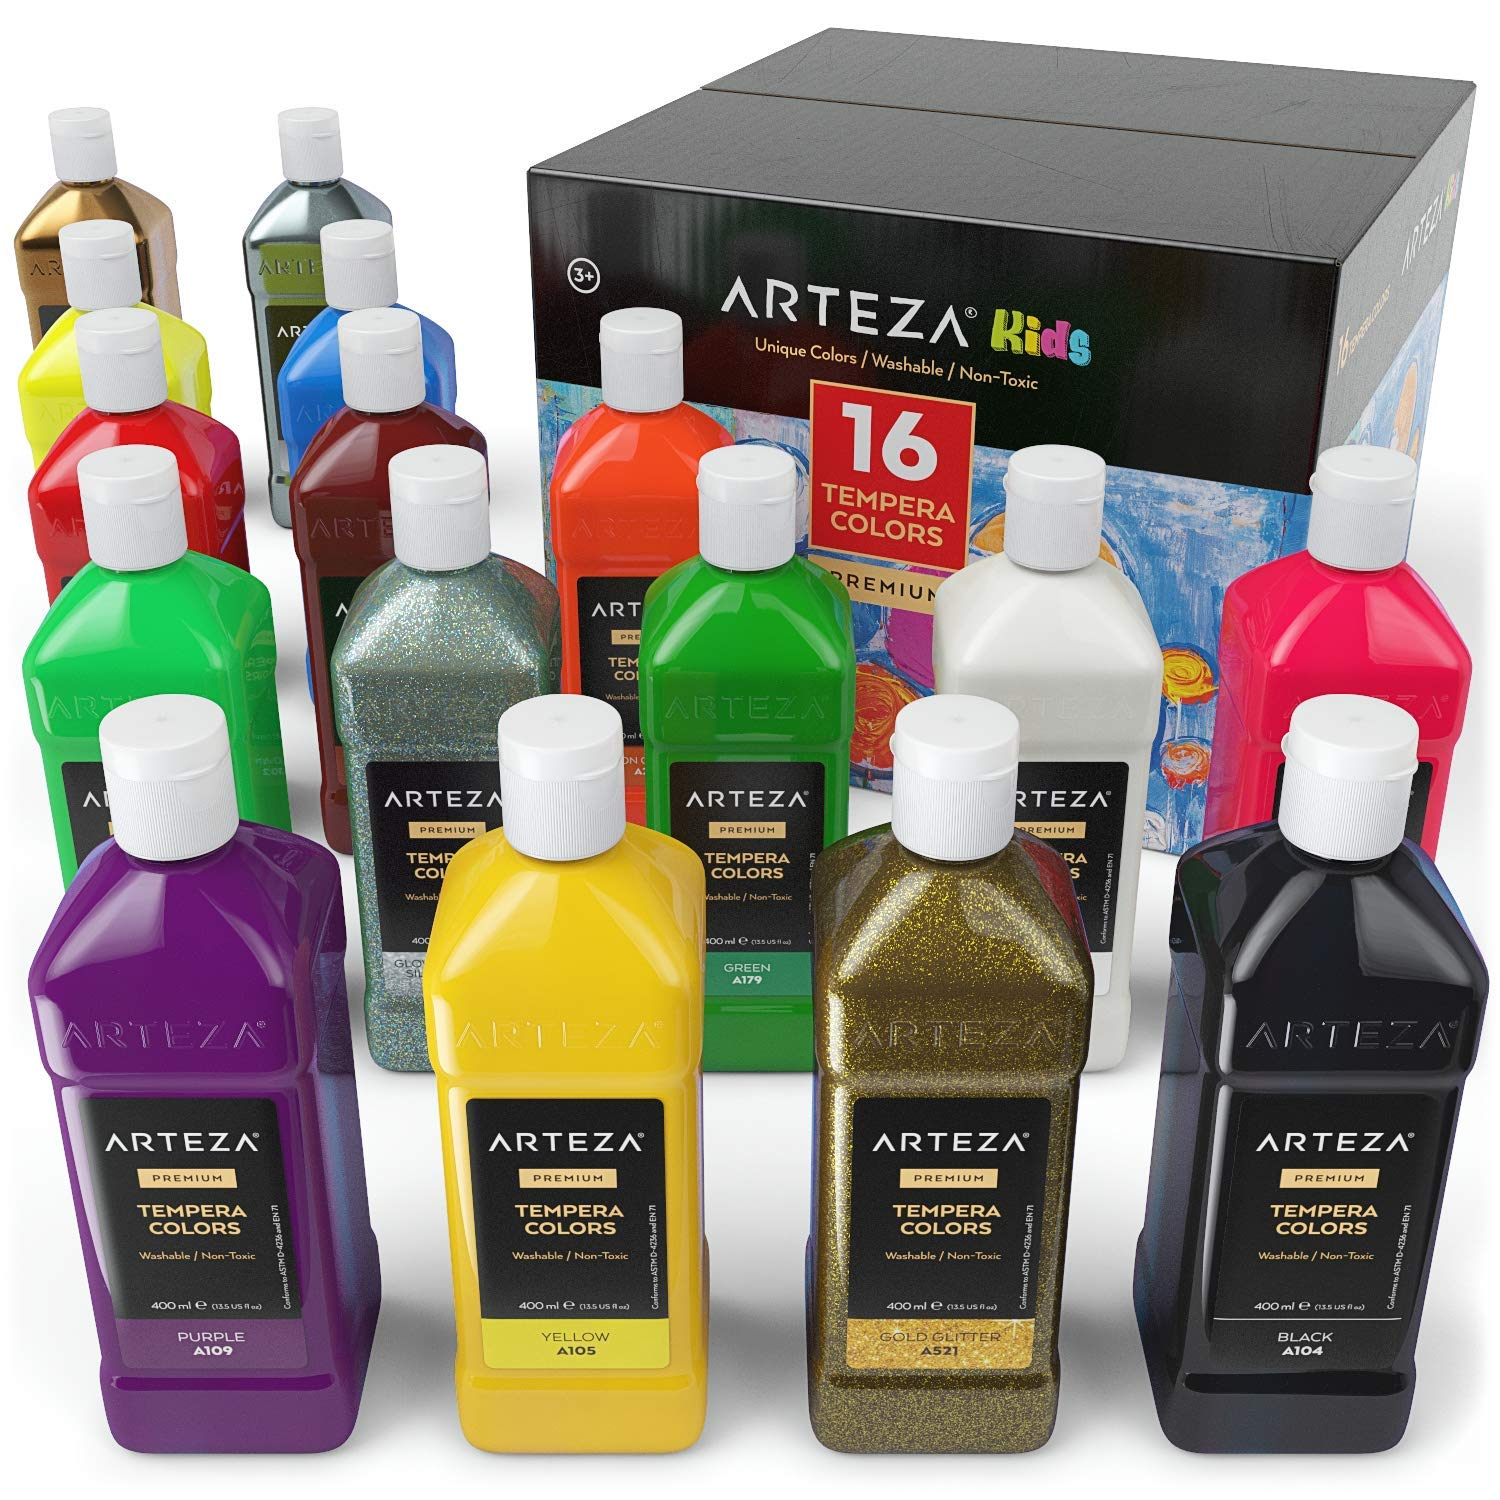 ARTEZA Tempera Paint Set for Kids (13.5 US fl oz./400 ml), 16 Rich, Non-Toxic, and Washable Colors Ideal for Finger Painting, Sponge Painting, and Poster Painting by ARTEZA